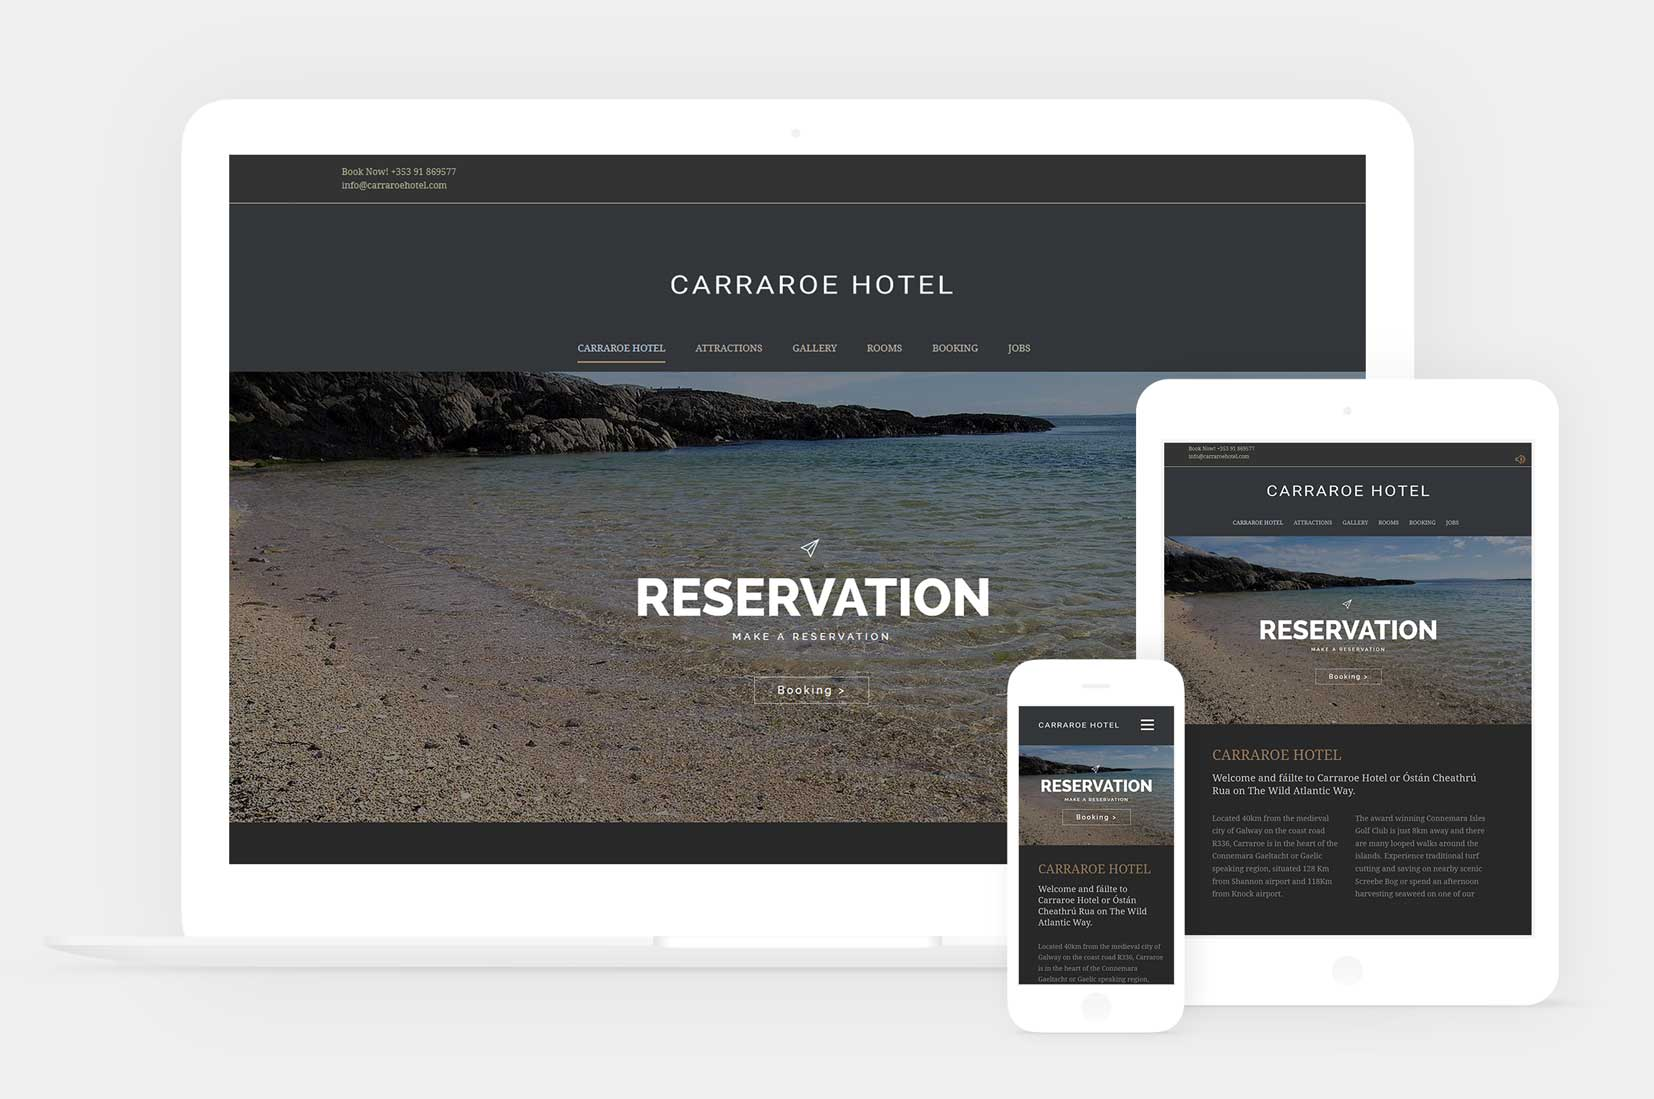 WordPress Based Website Design For Carraroe Hotel